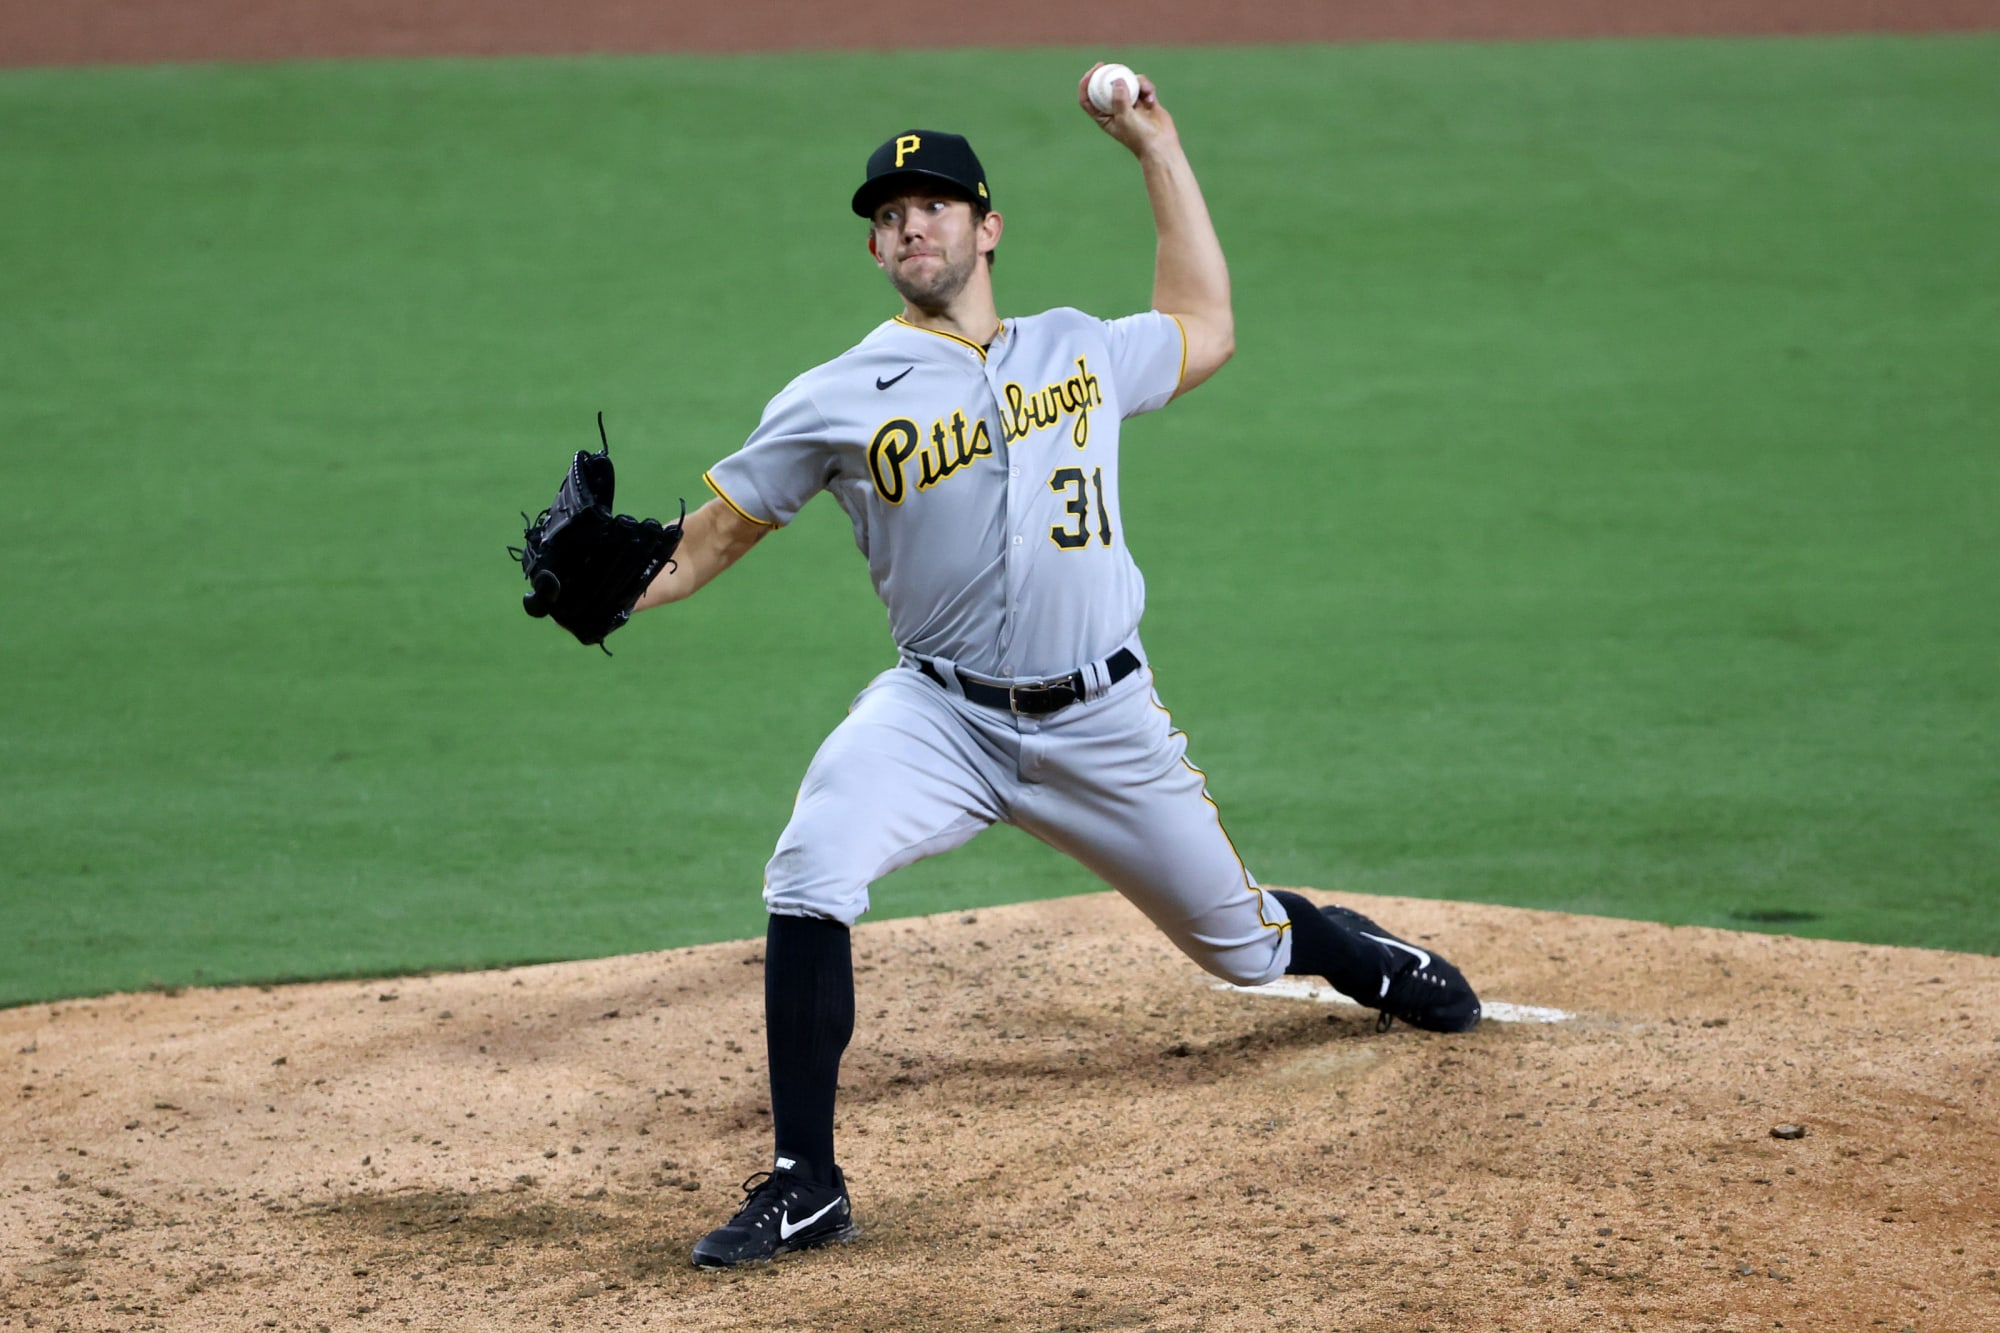 Pittsburgh Pirates: Tyler Anderson Flirts With No-Hitter in Loss